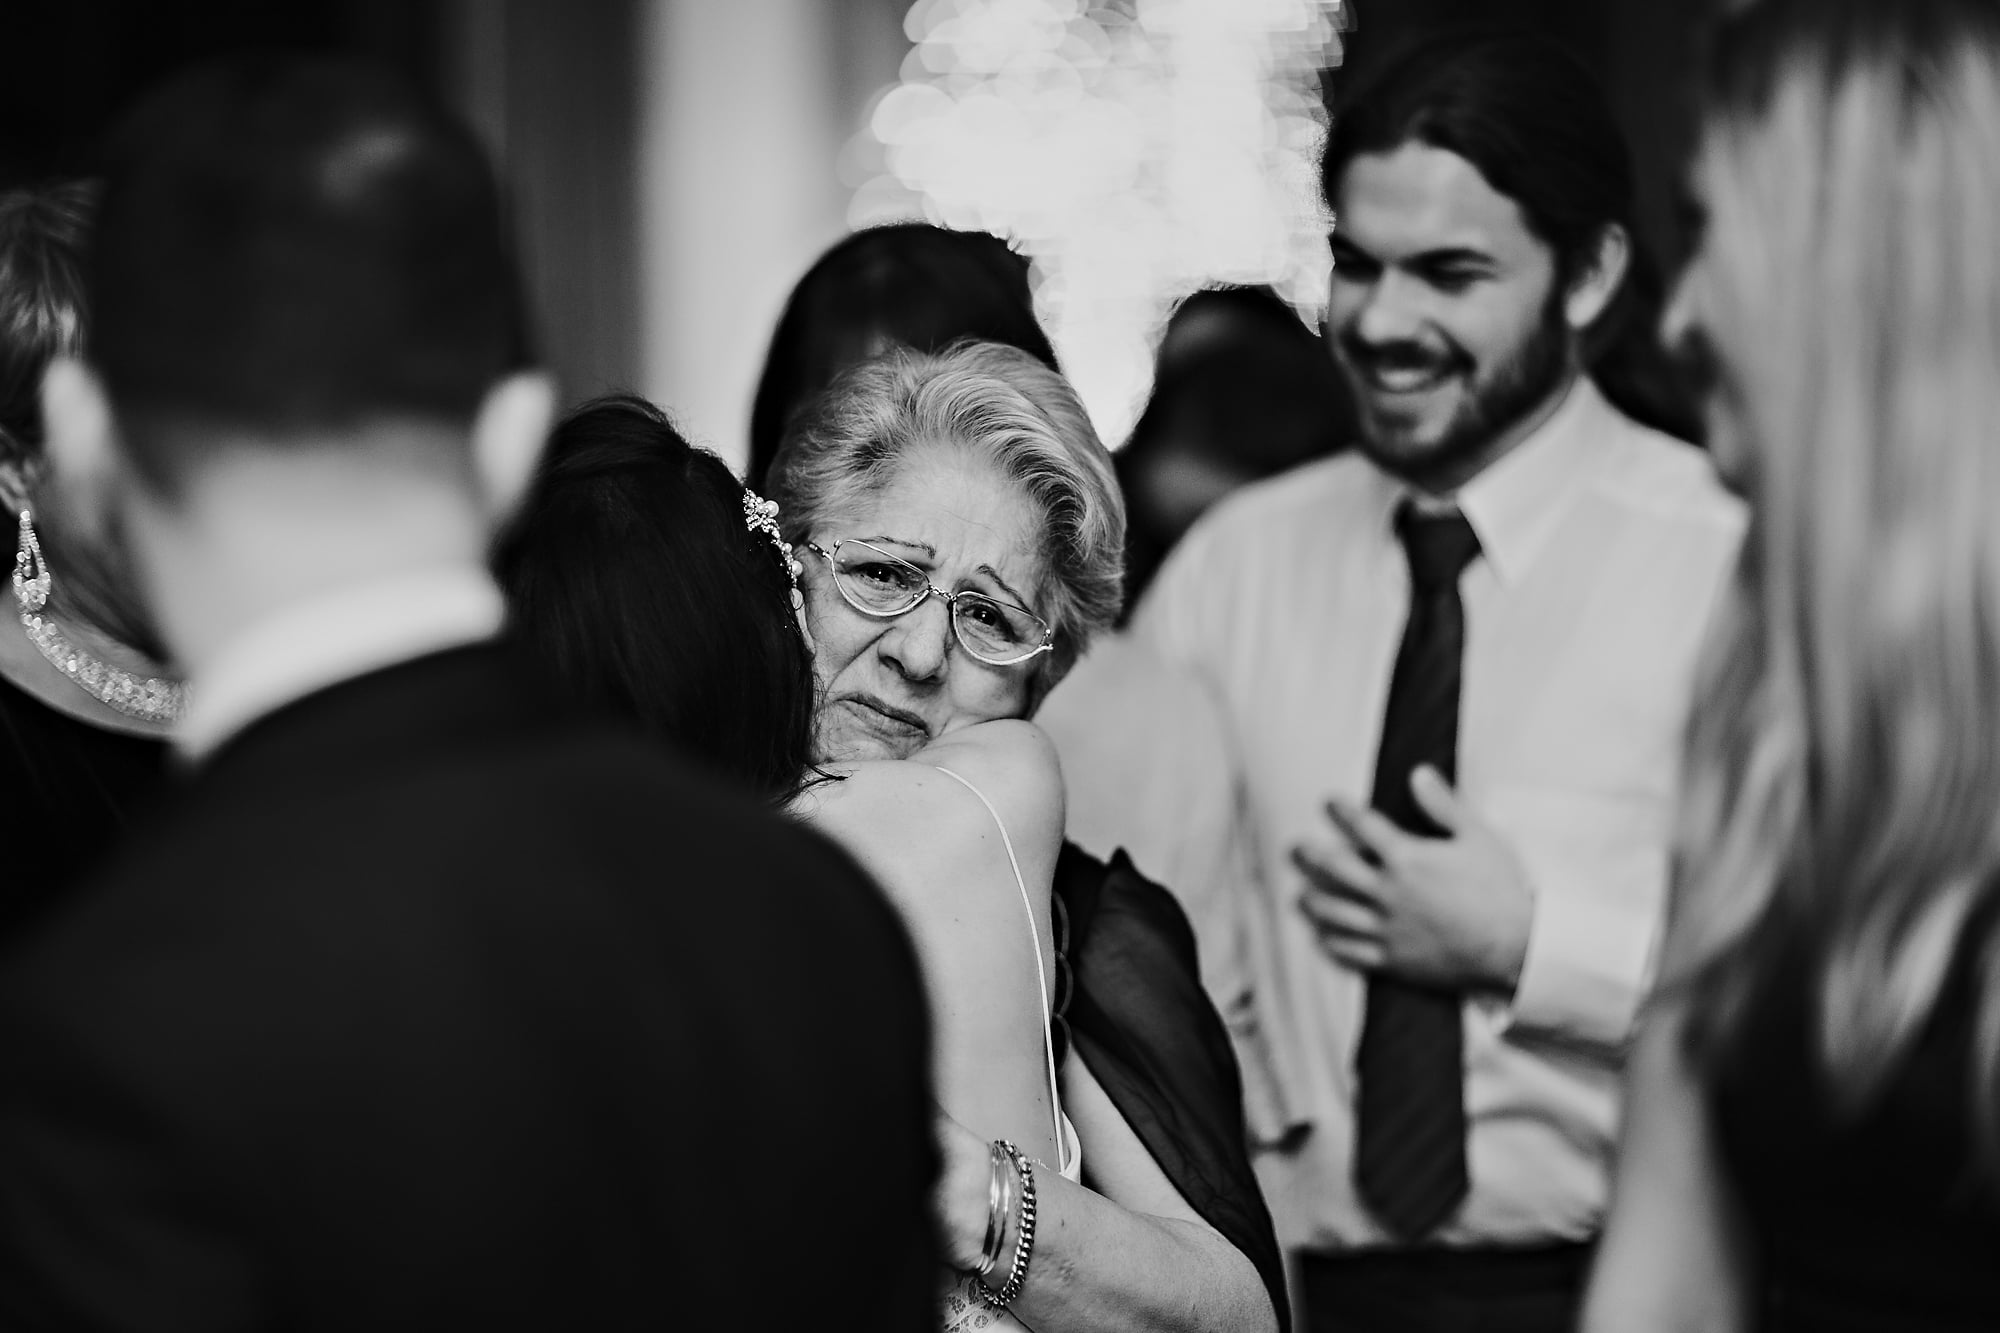 rachel gulotta photography Chicago Wedding-60.jpg